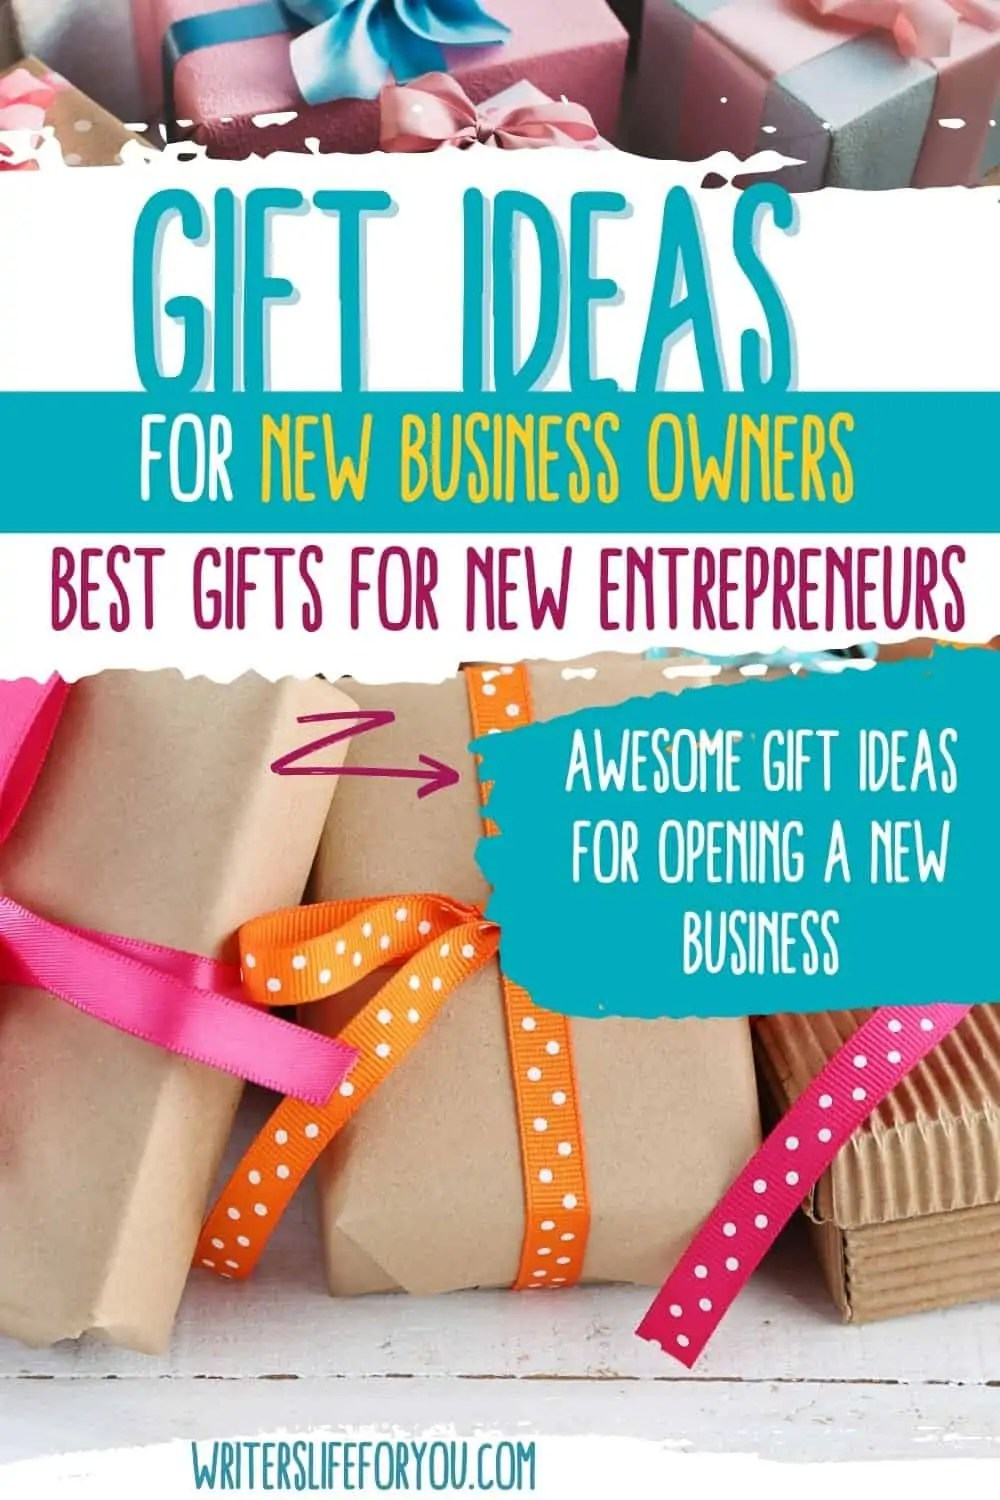 Gift Ideas for New Business Owner: 11 Amazing Gifts for New Entrepreneurs